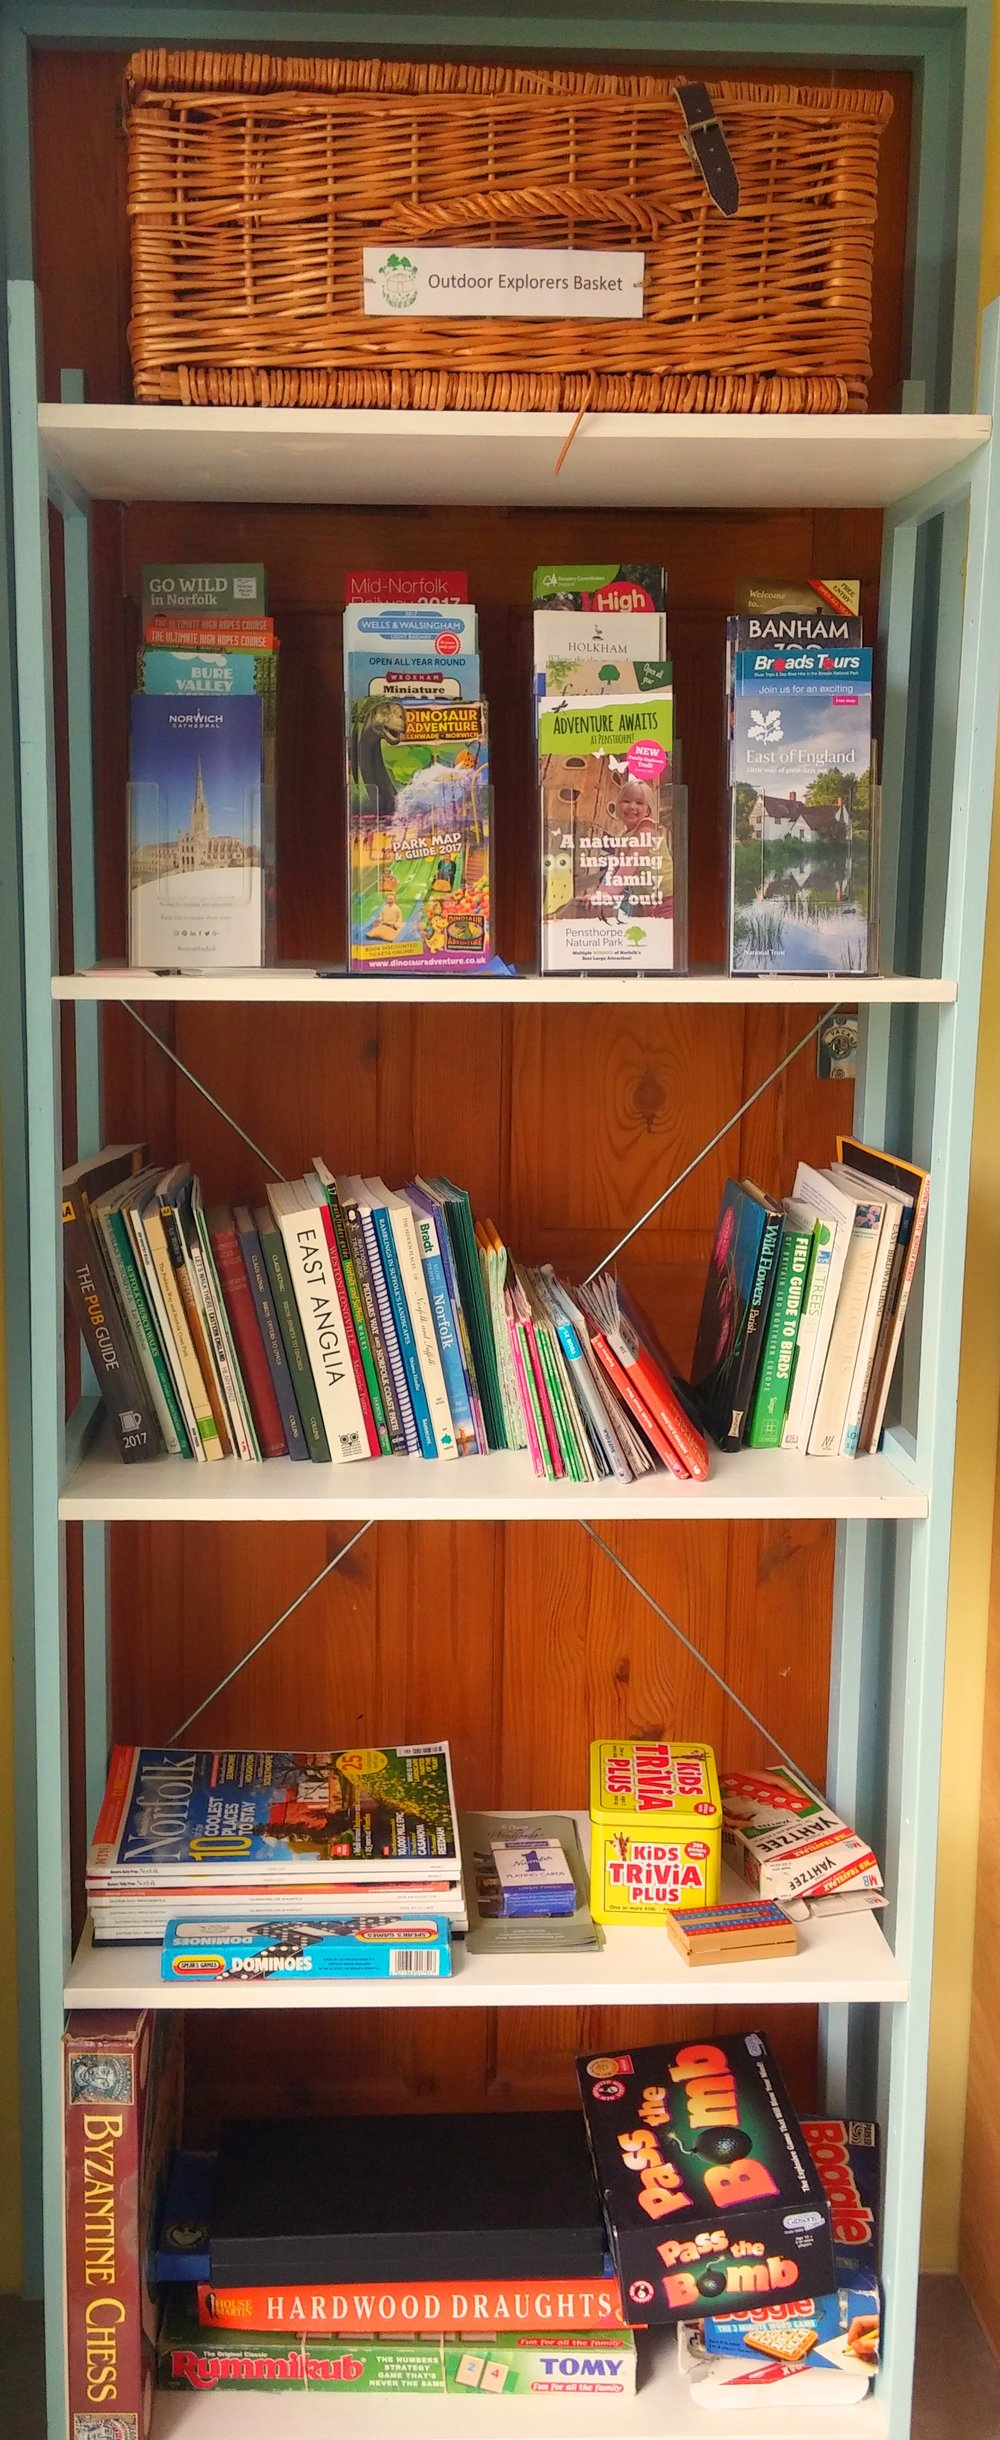 leaflet shelves.jpg